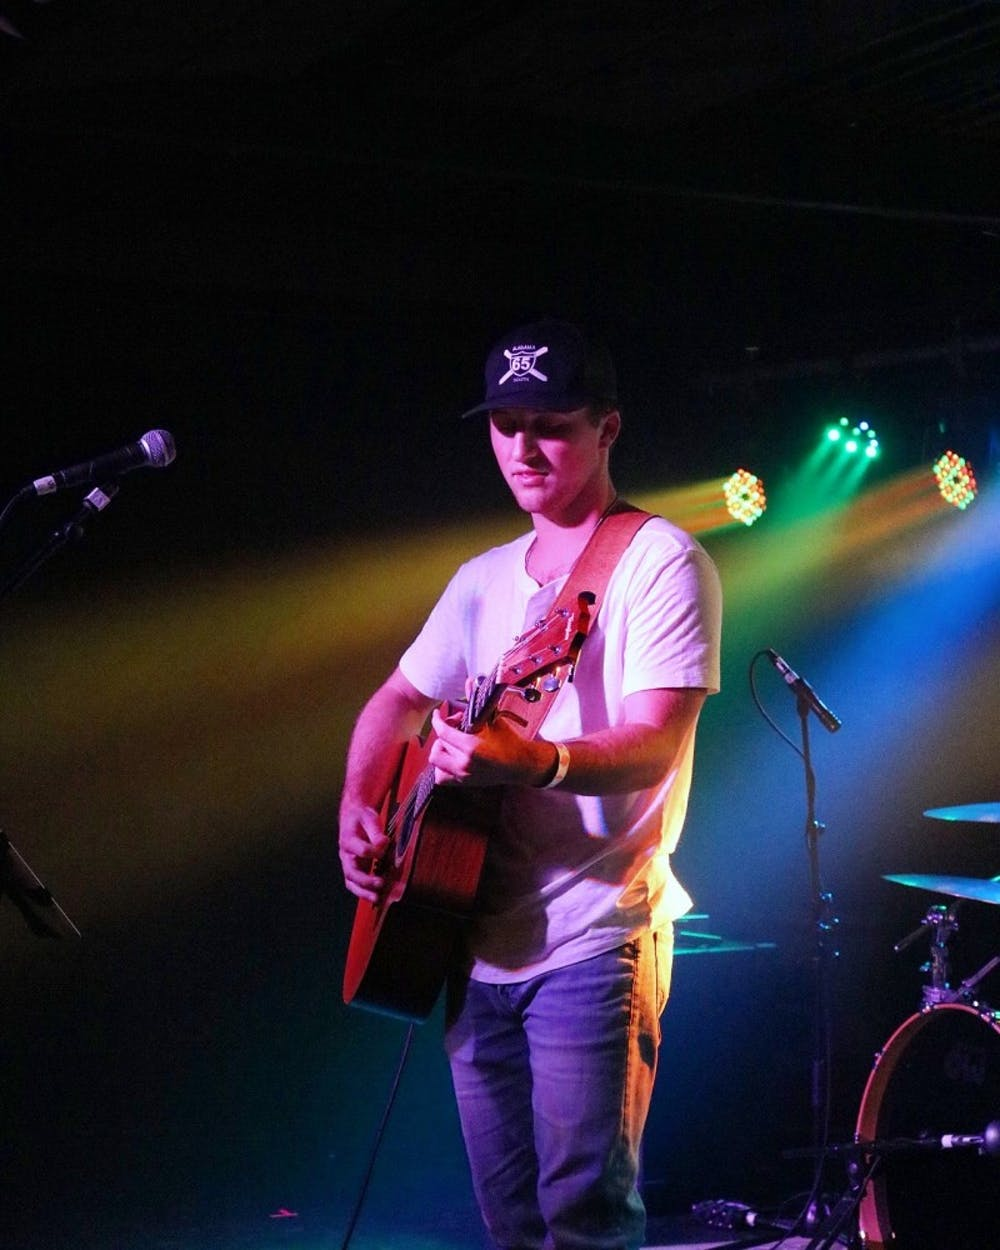 Auburn student launches country music career